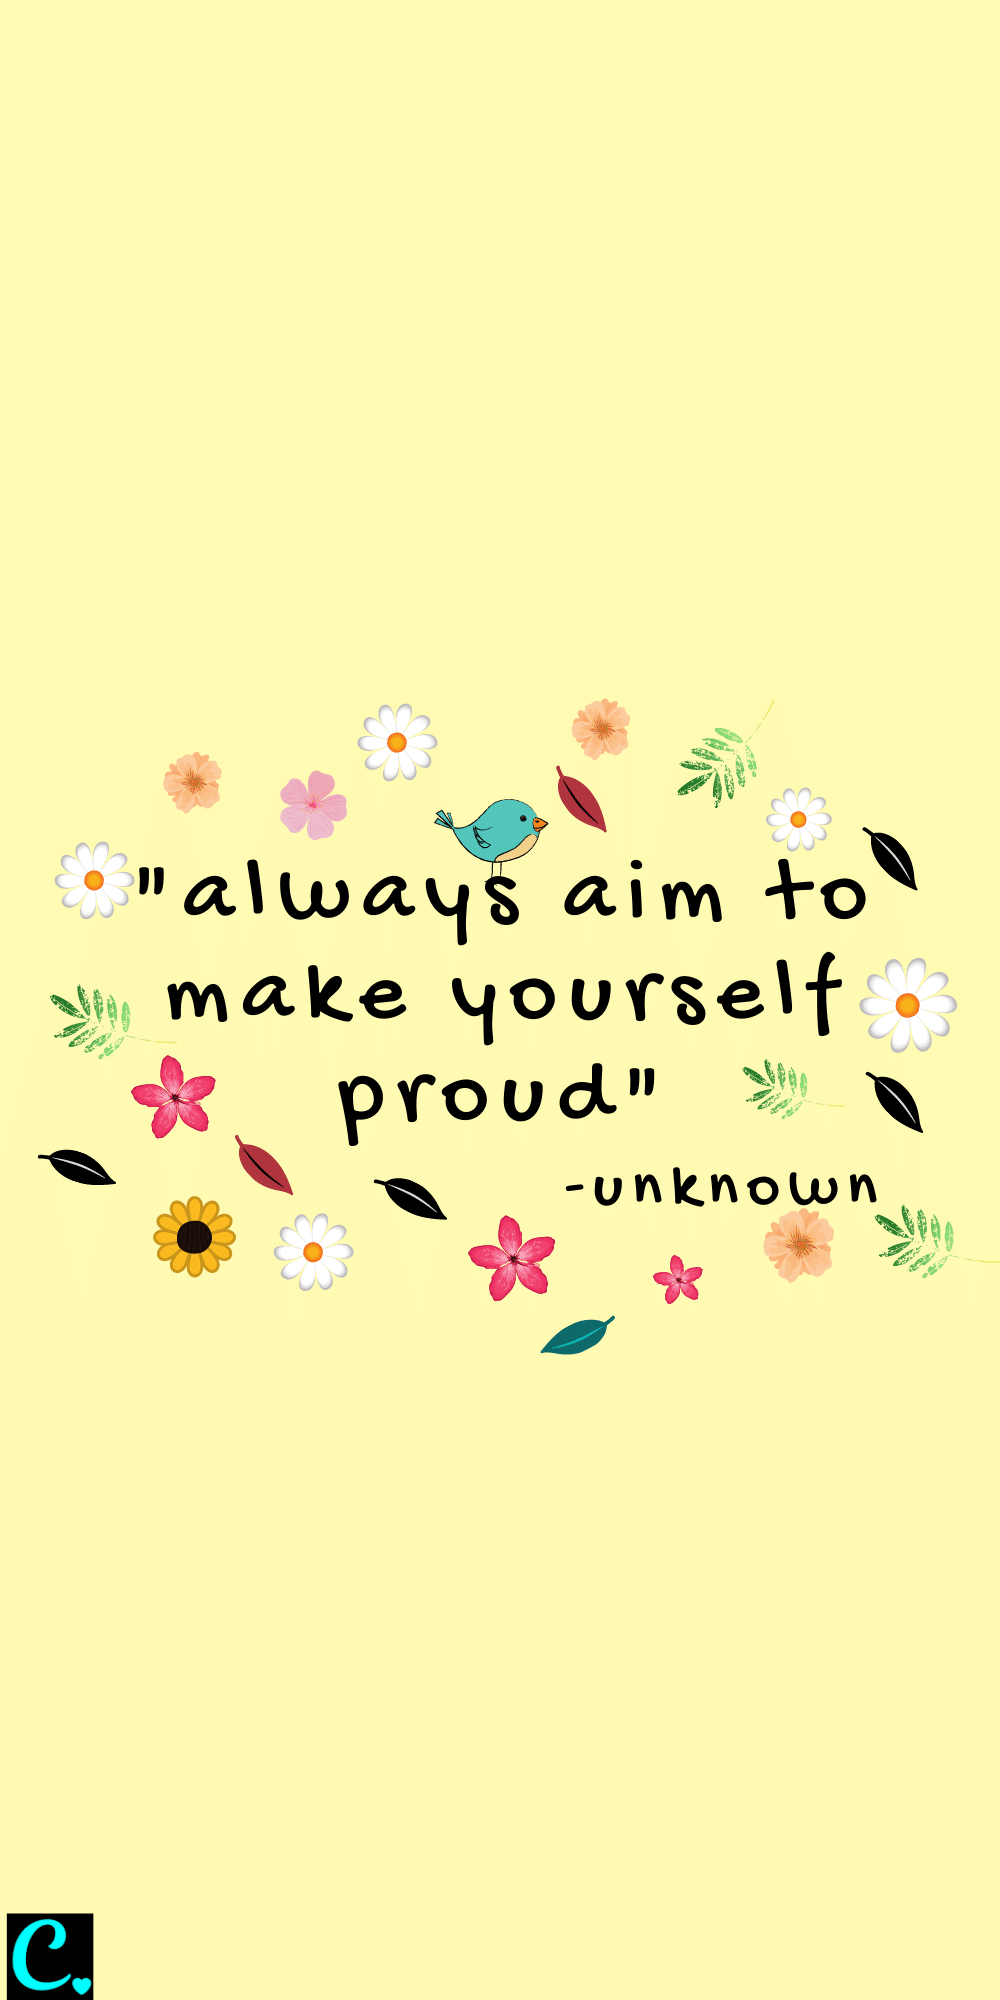 Always aim to make yourself proud